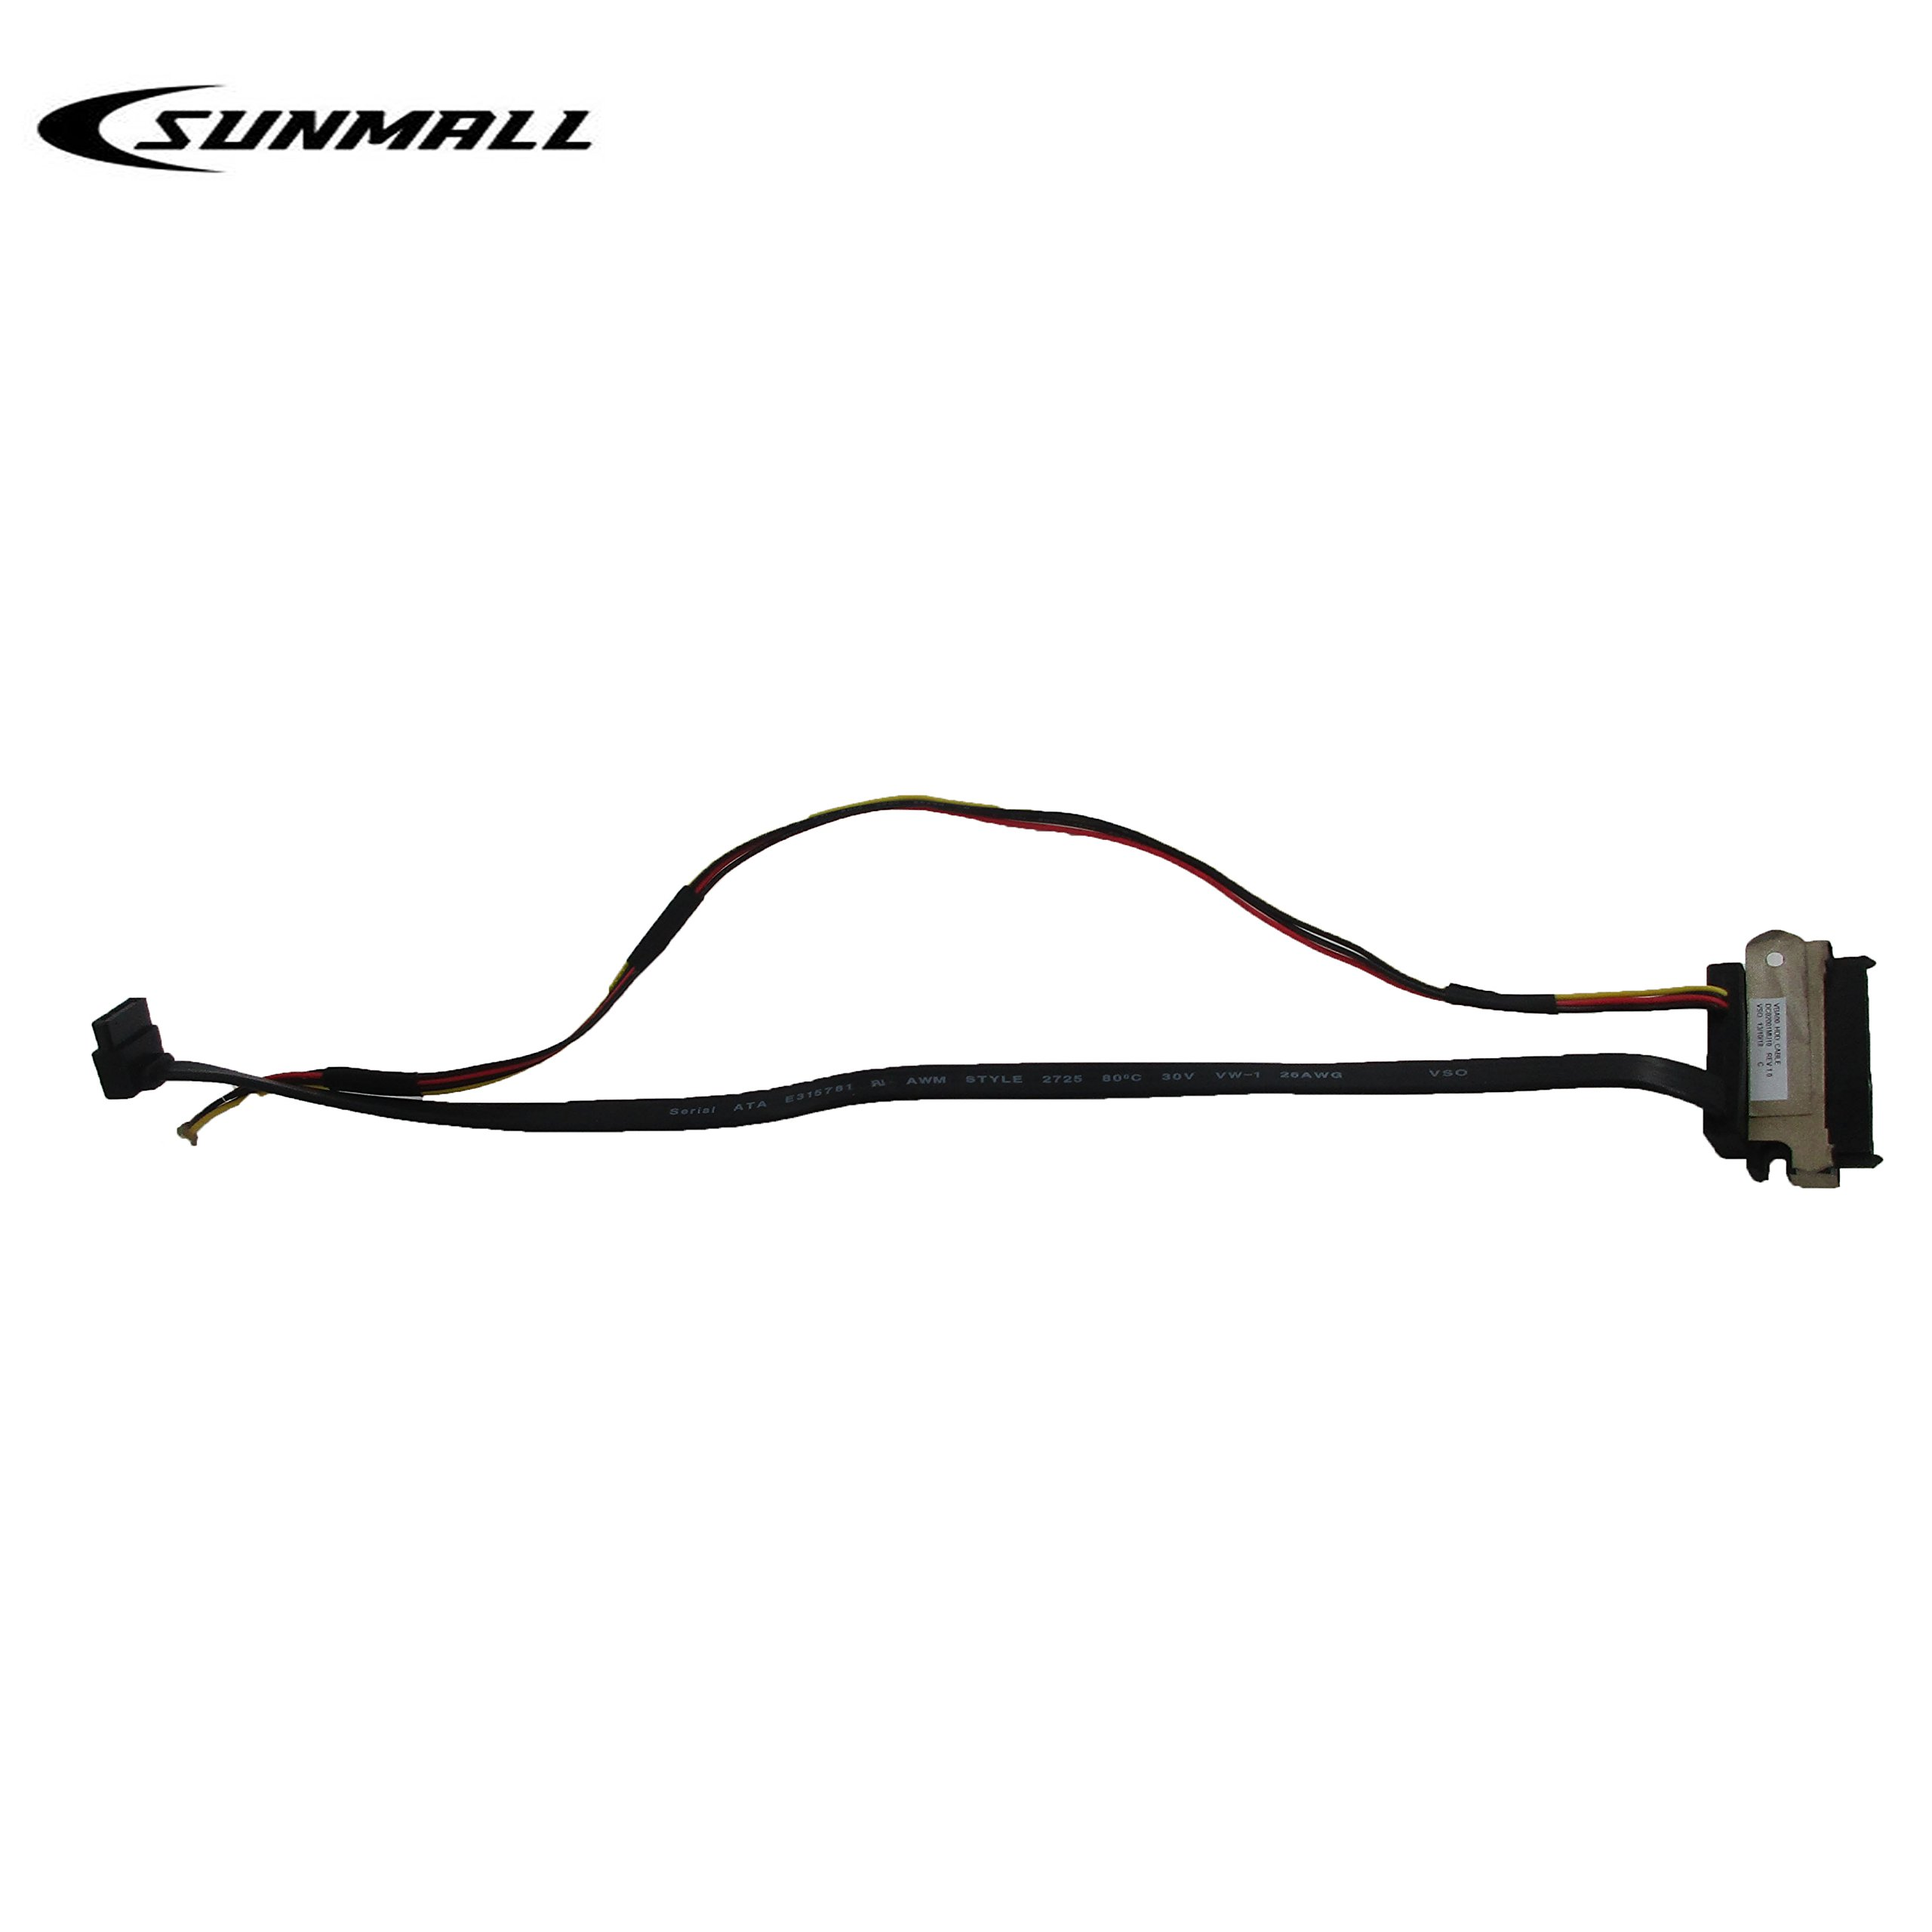 SUNMALL New Hard Disk Drive HDD Optical Drive SATA Power Cable for Lenovo C540 C560 Series Computer (6 Months Warranty)